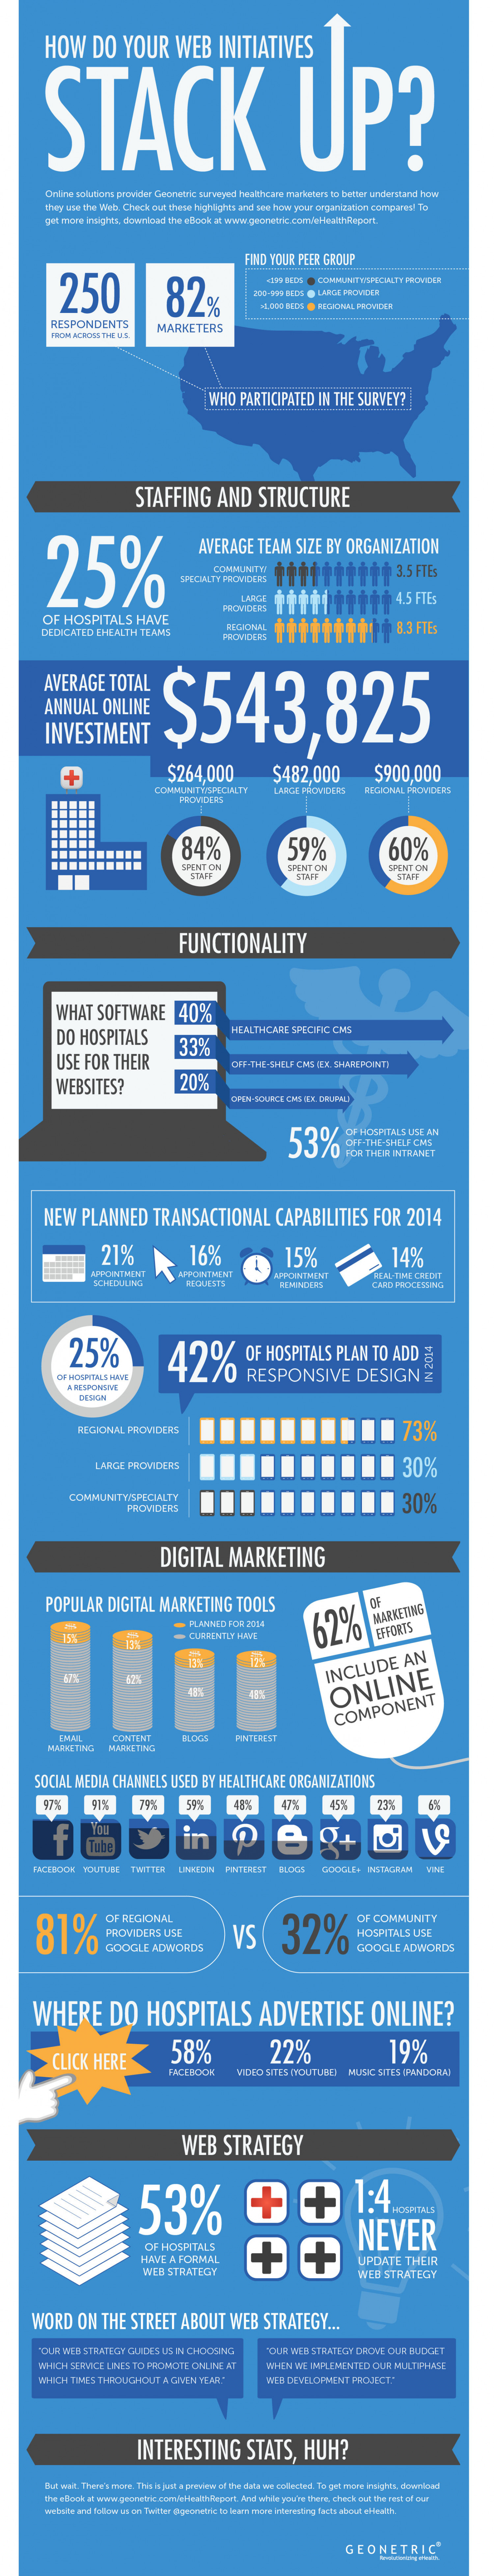 How Do Your Web Initiatives Stack Up? Infographic